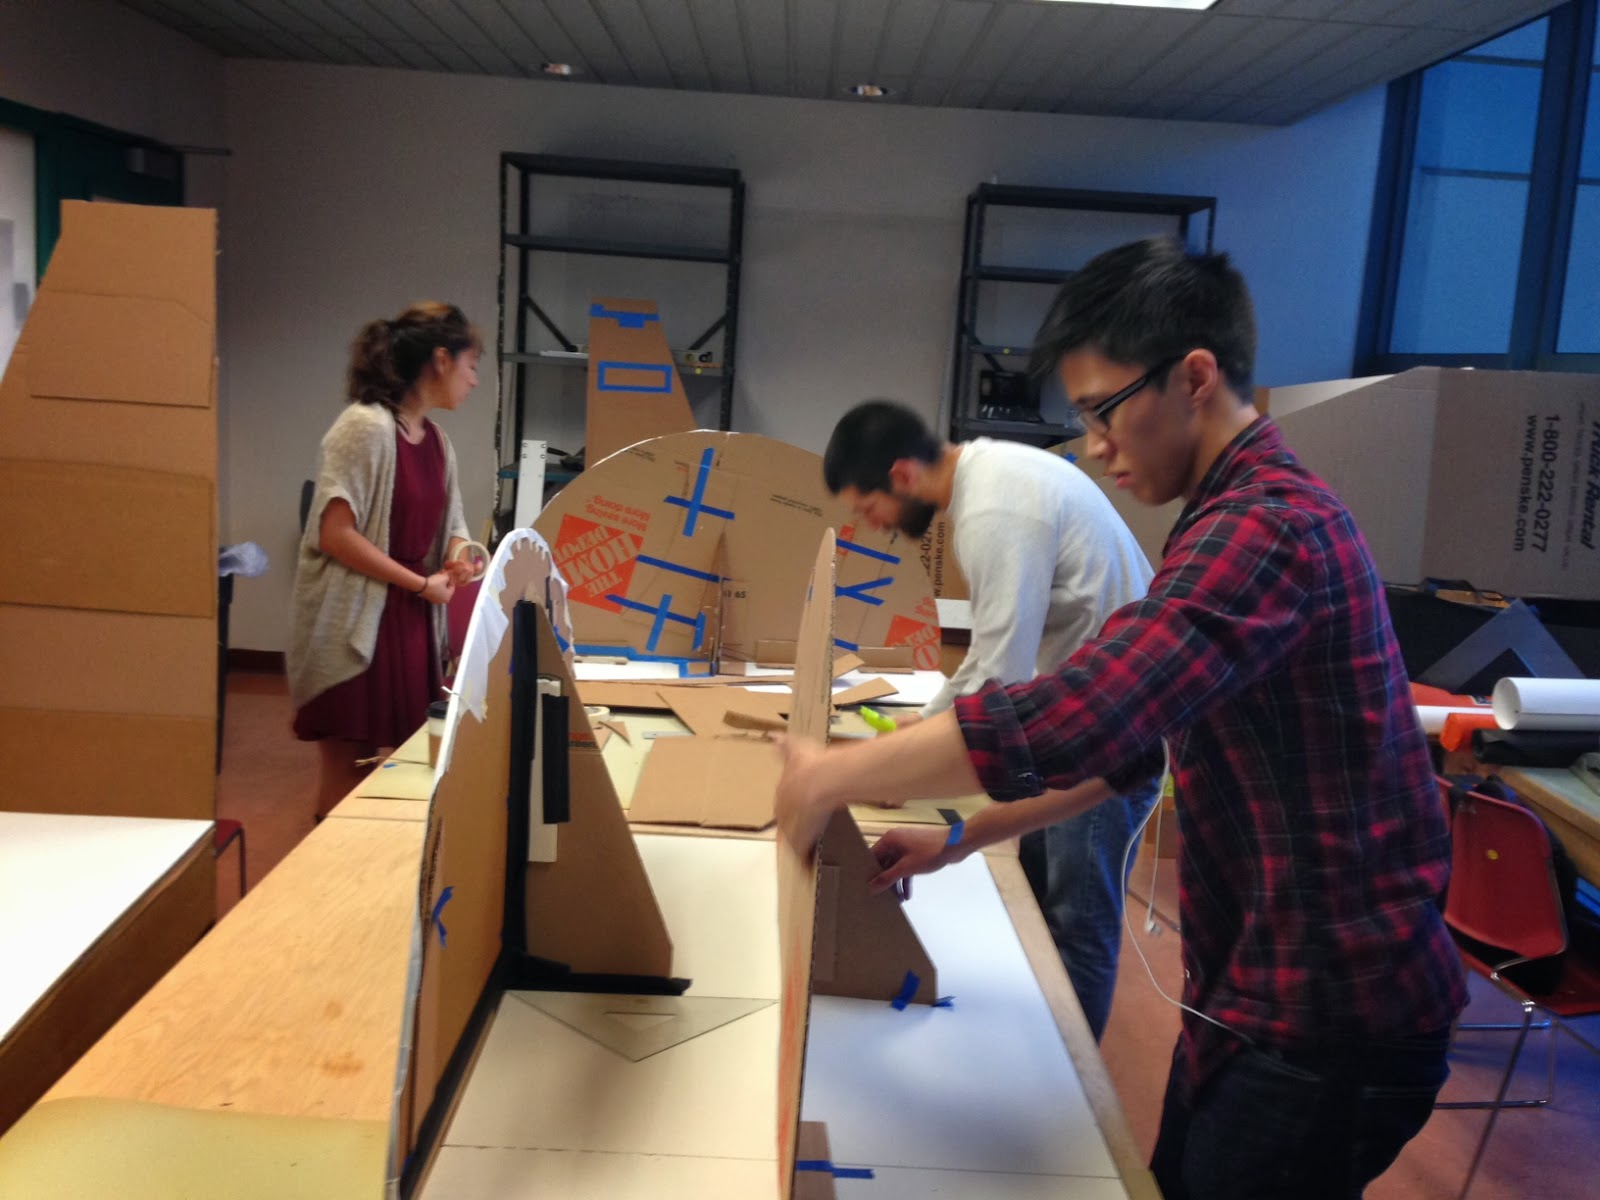 Students work on constructing the full-scale cardboard prototype. Pieces are scattered throughout the room to be assembled upon completion.